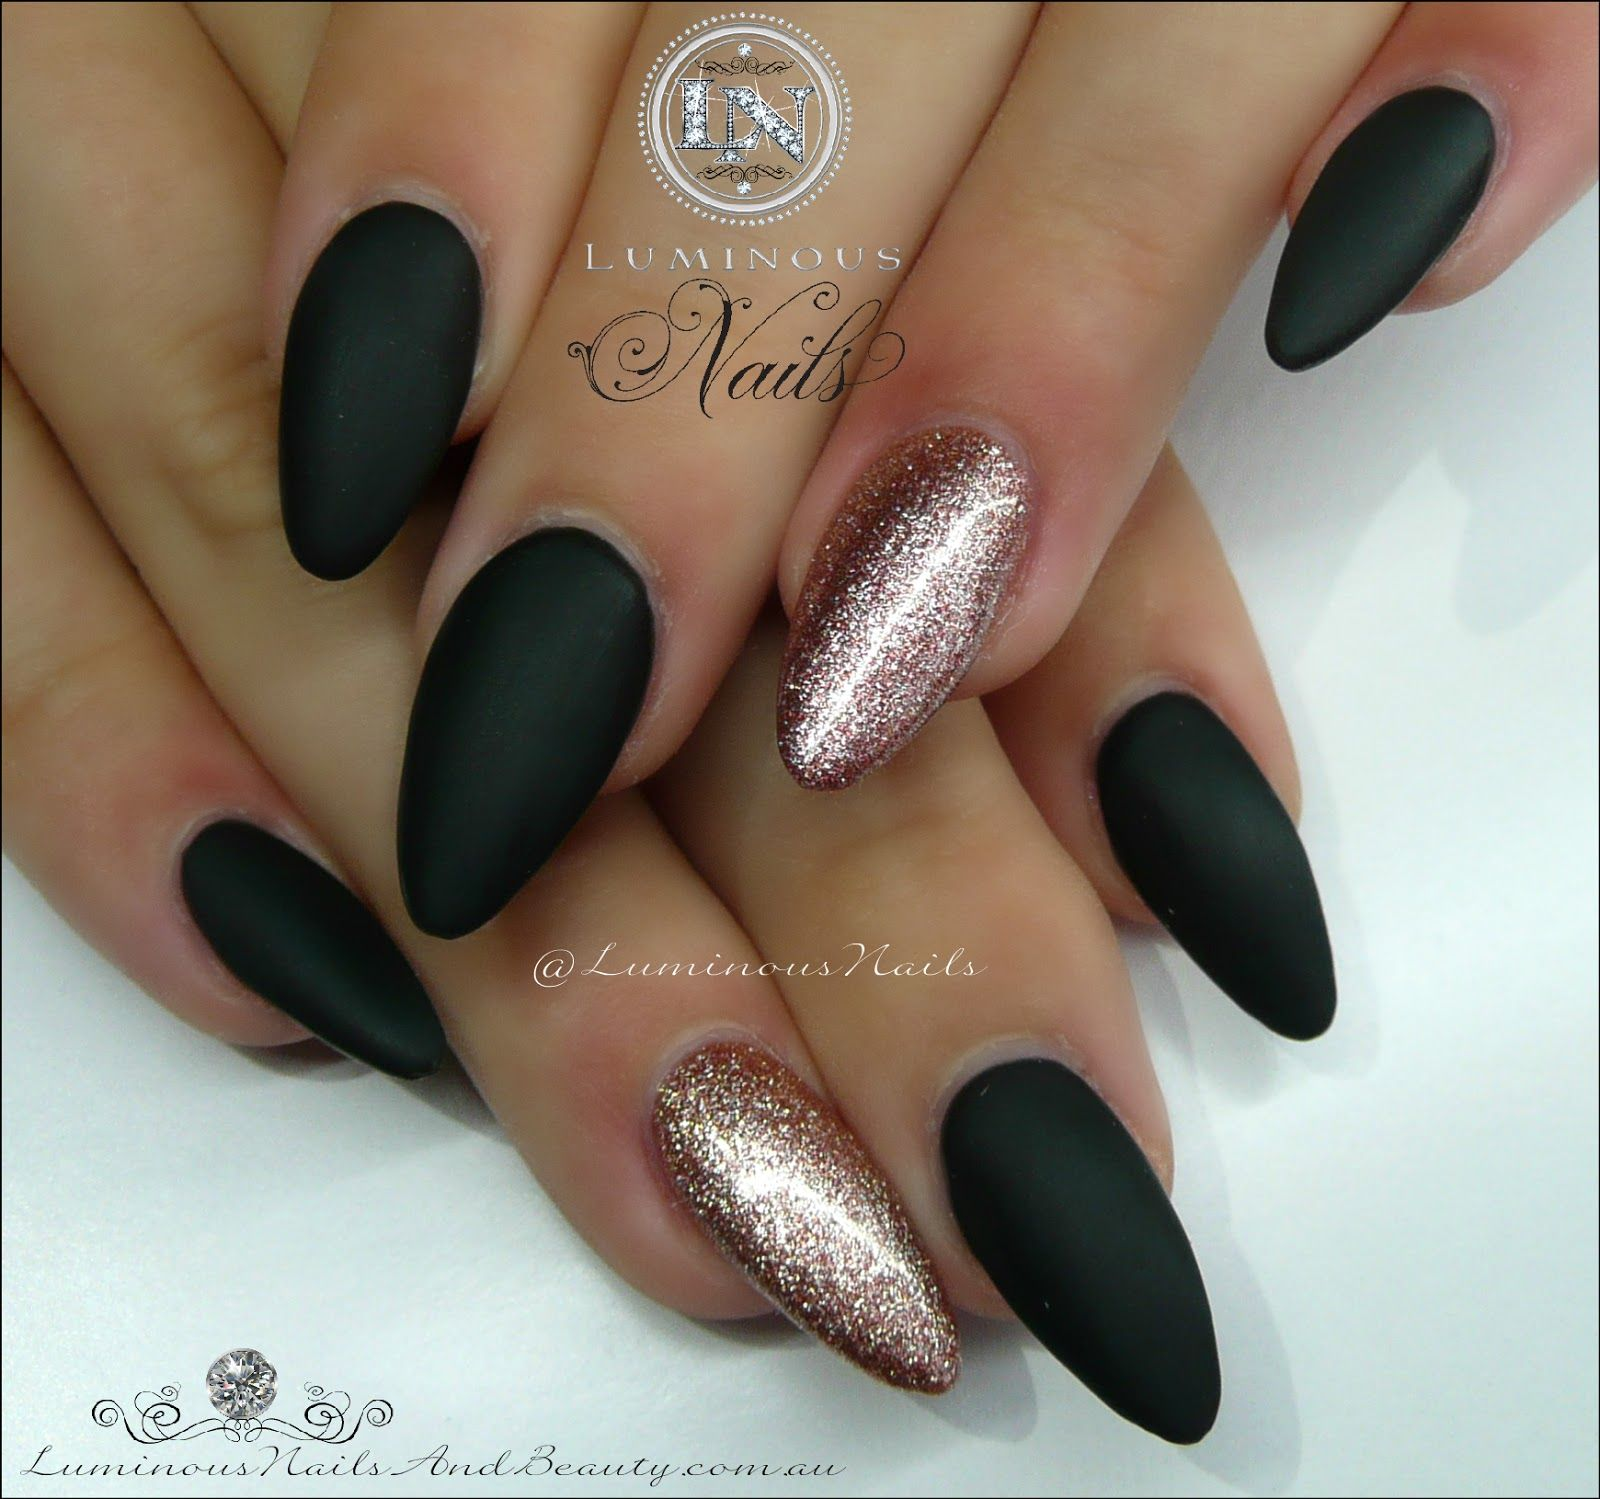 Luminous Nails Matt Black Rose Gold Acrylic Gel